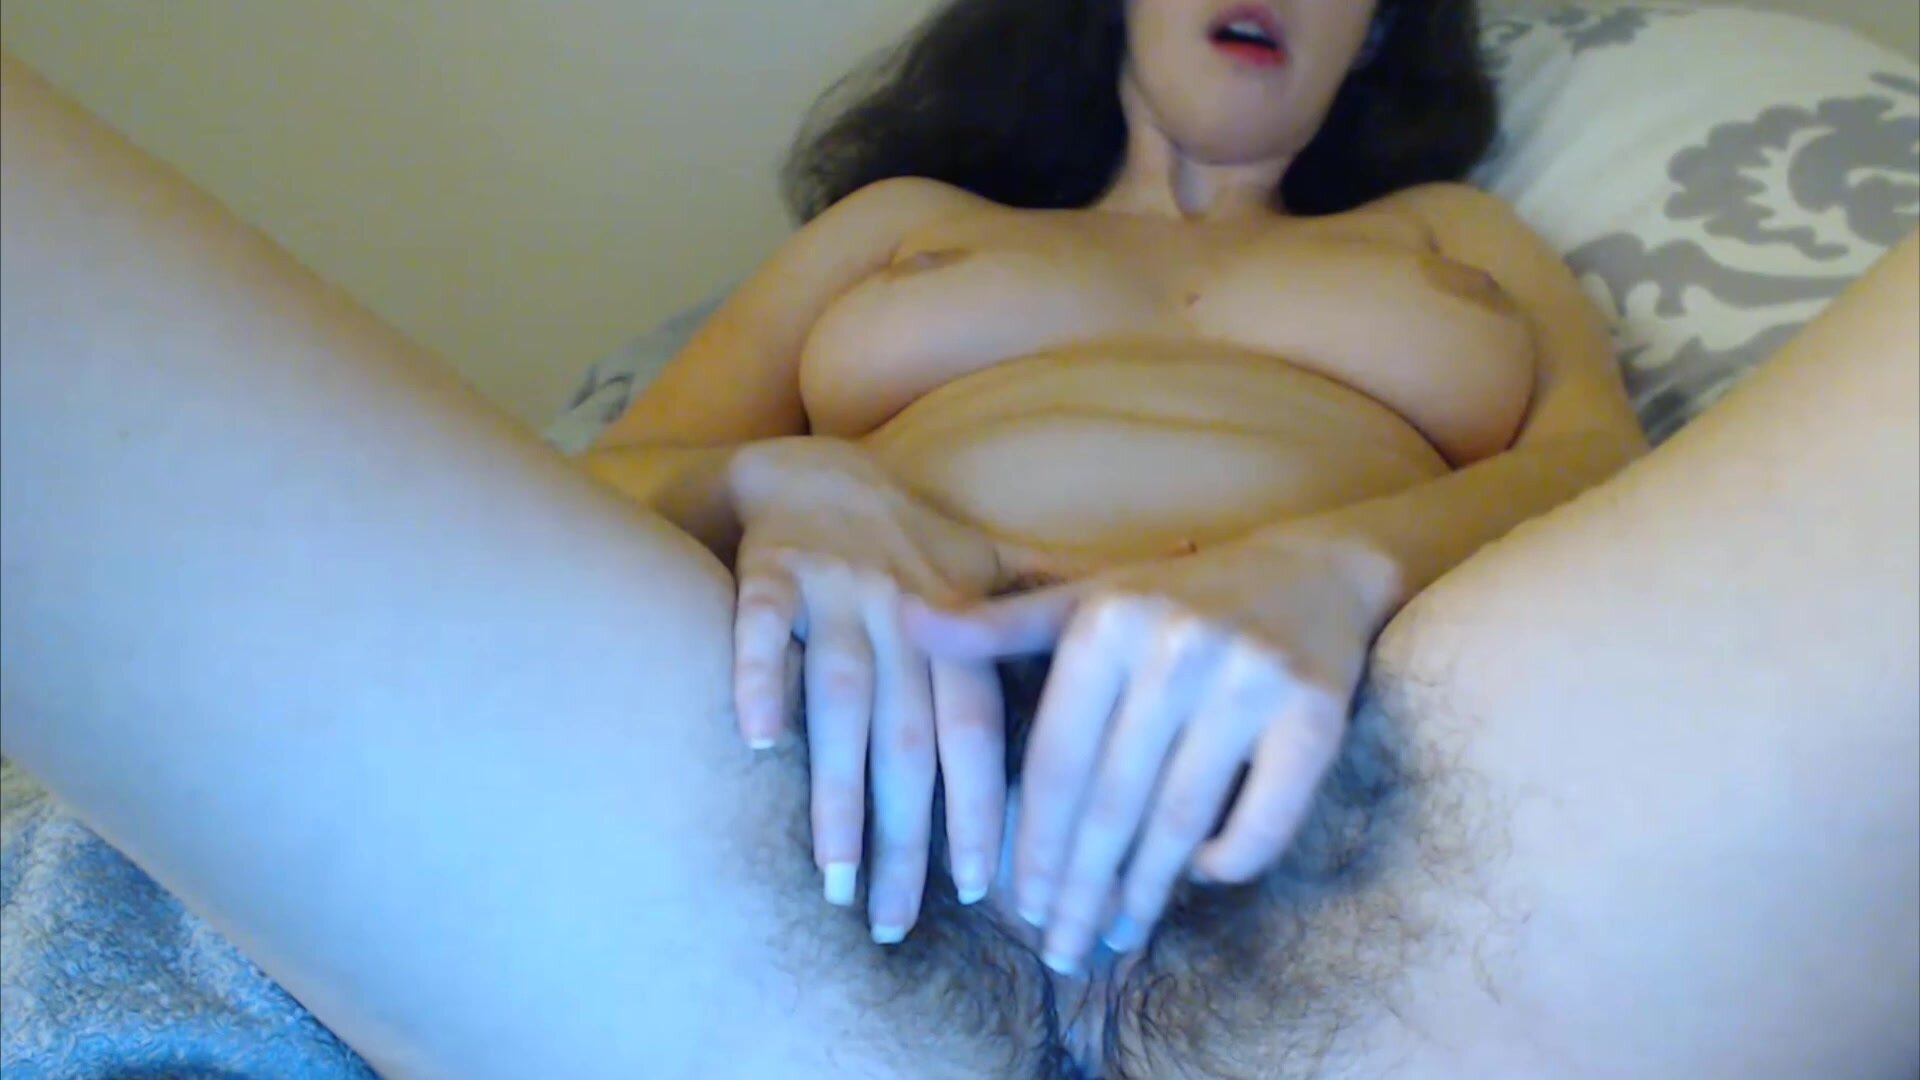 livesexify.net - Blue-eyed brunette Sweetsuz rubbing her natural hairy bush